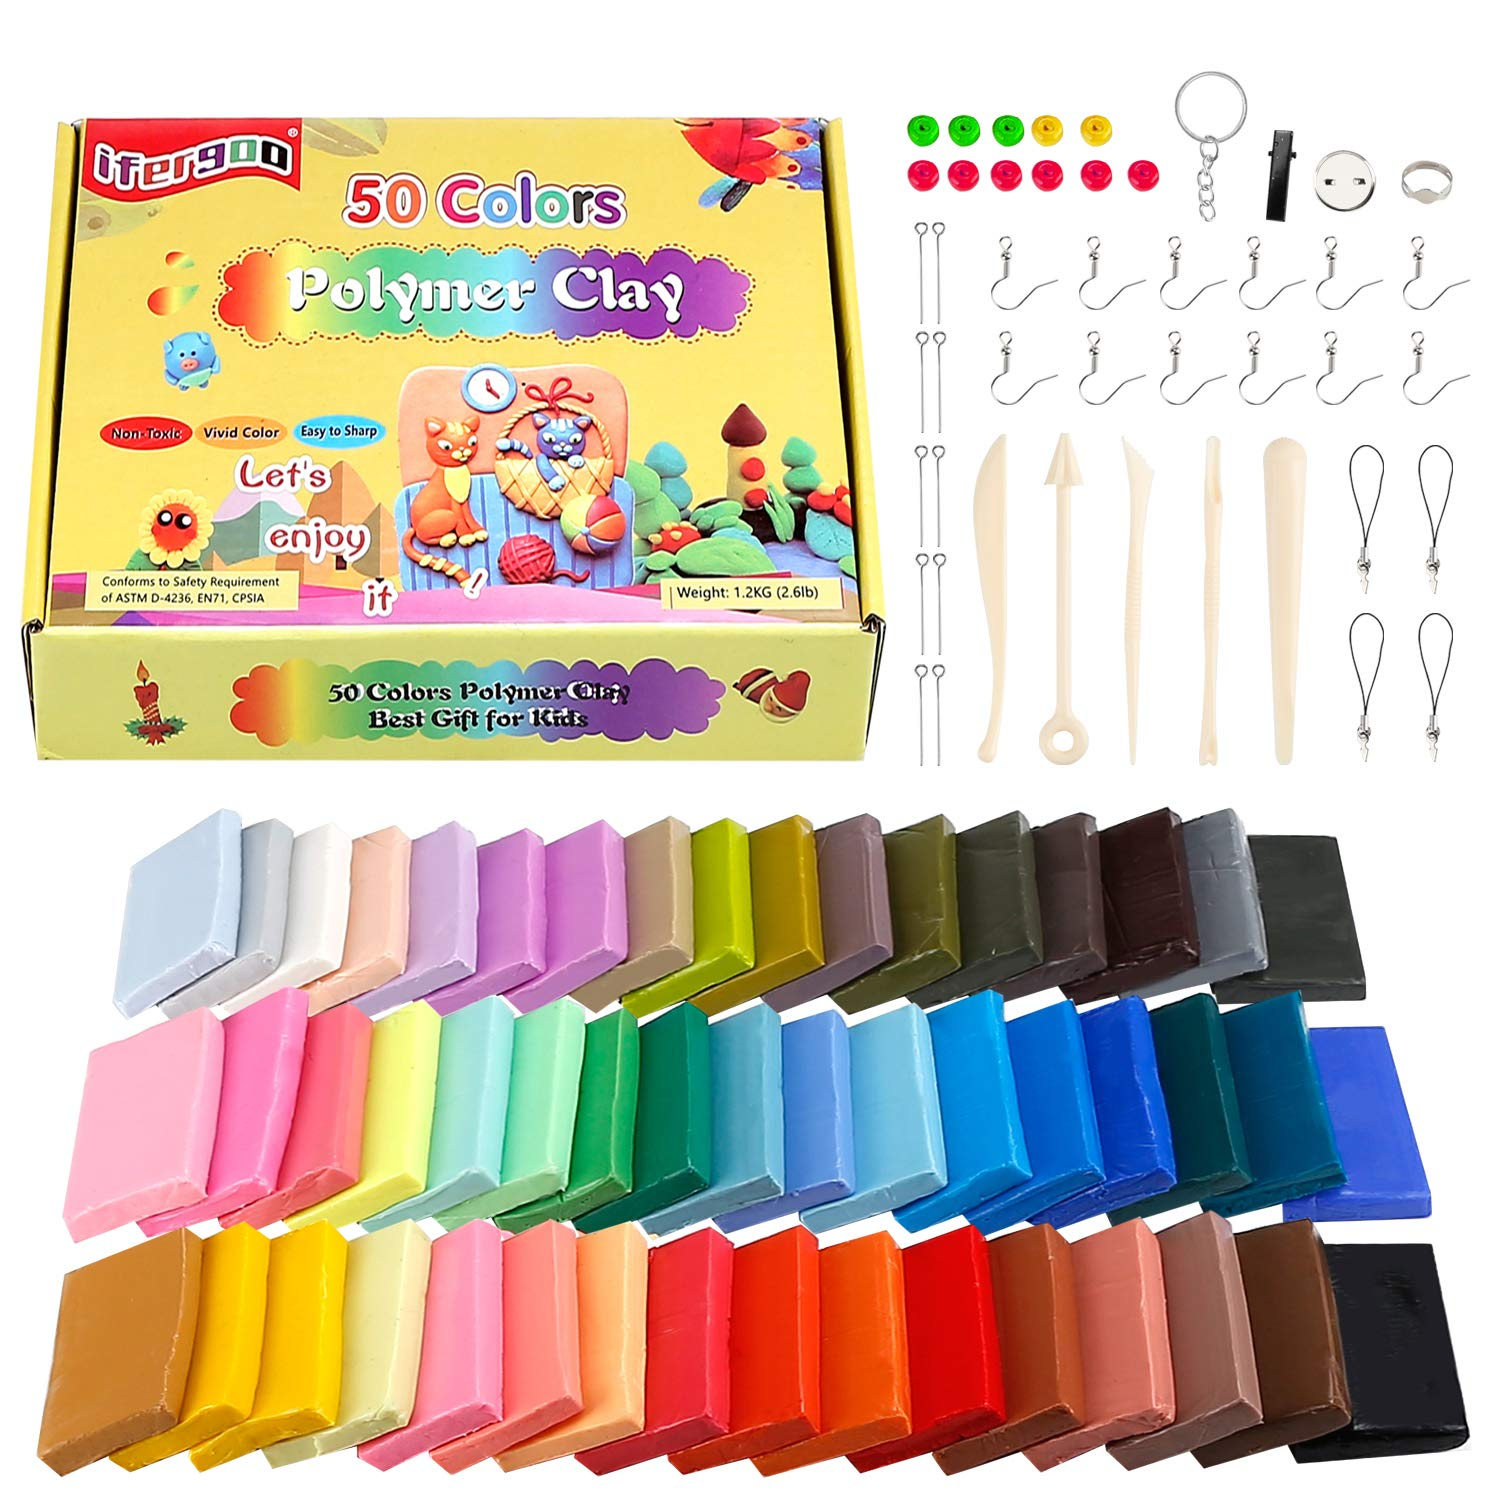 ifergoo Polymer Clay, 50 Colors Oven Bake Clay with 8 pcs Modeling Tools, Modelling Clay Soft and Nontoxic DIY Plastic Tools and Accessorie